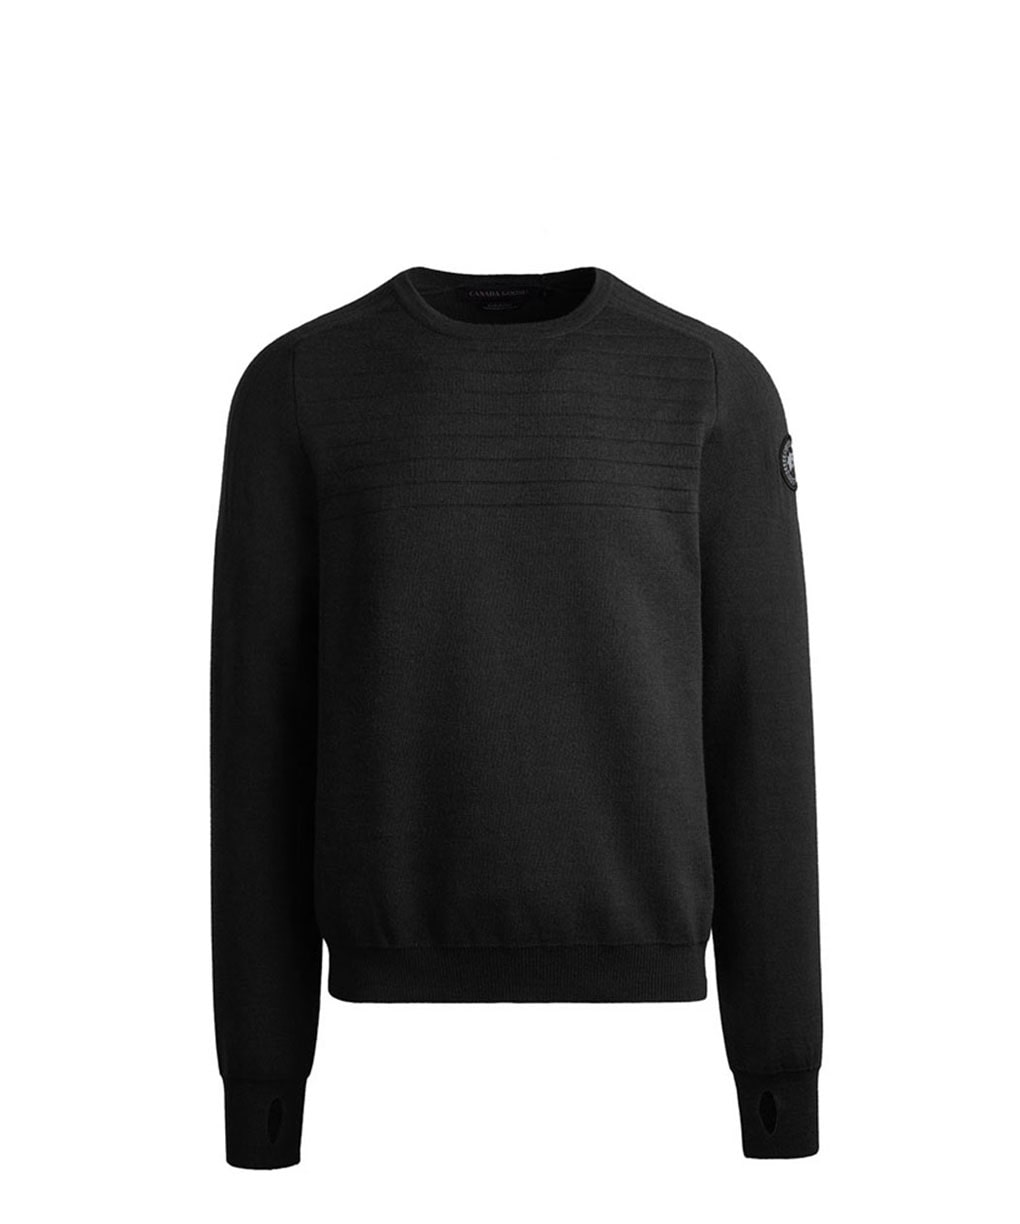 CONWAY CREW NECK SWEATER